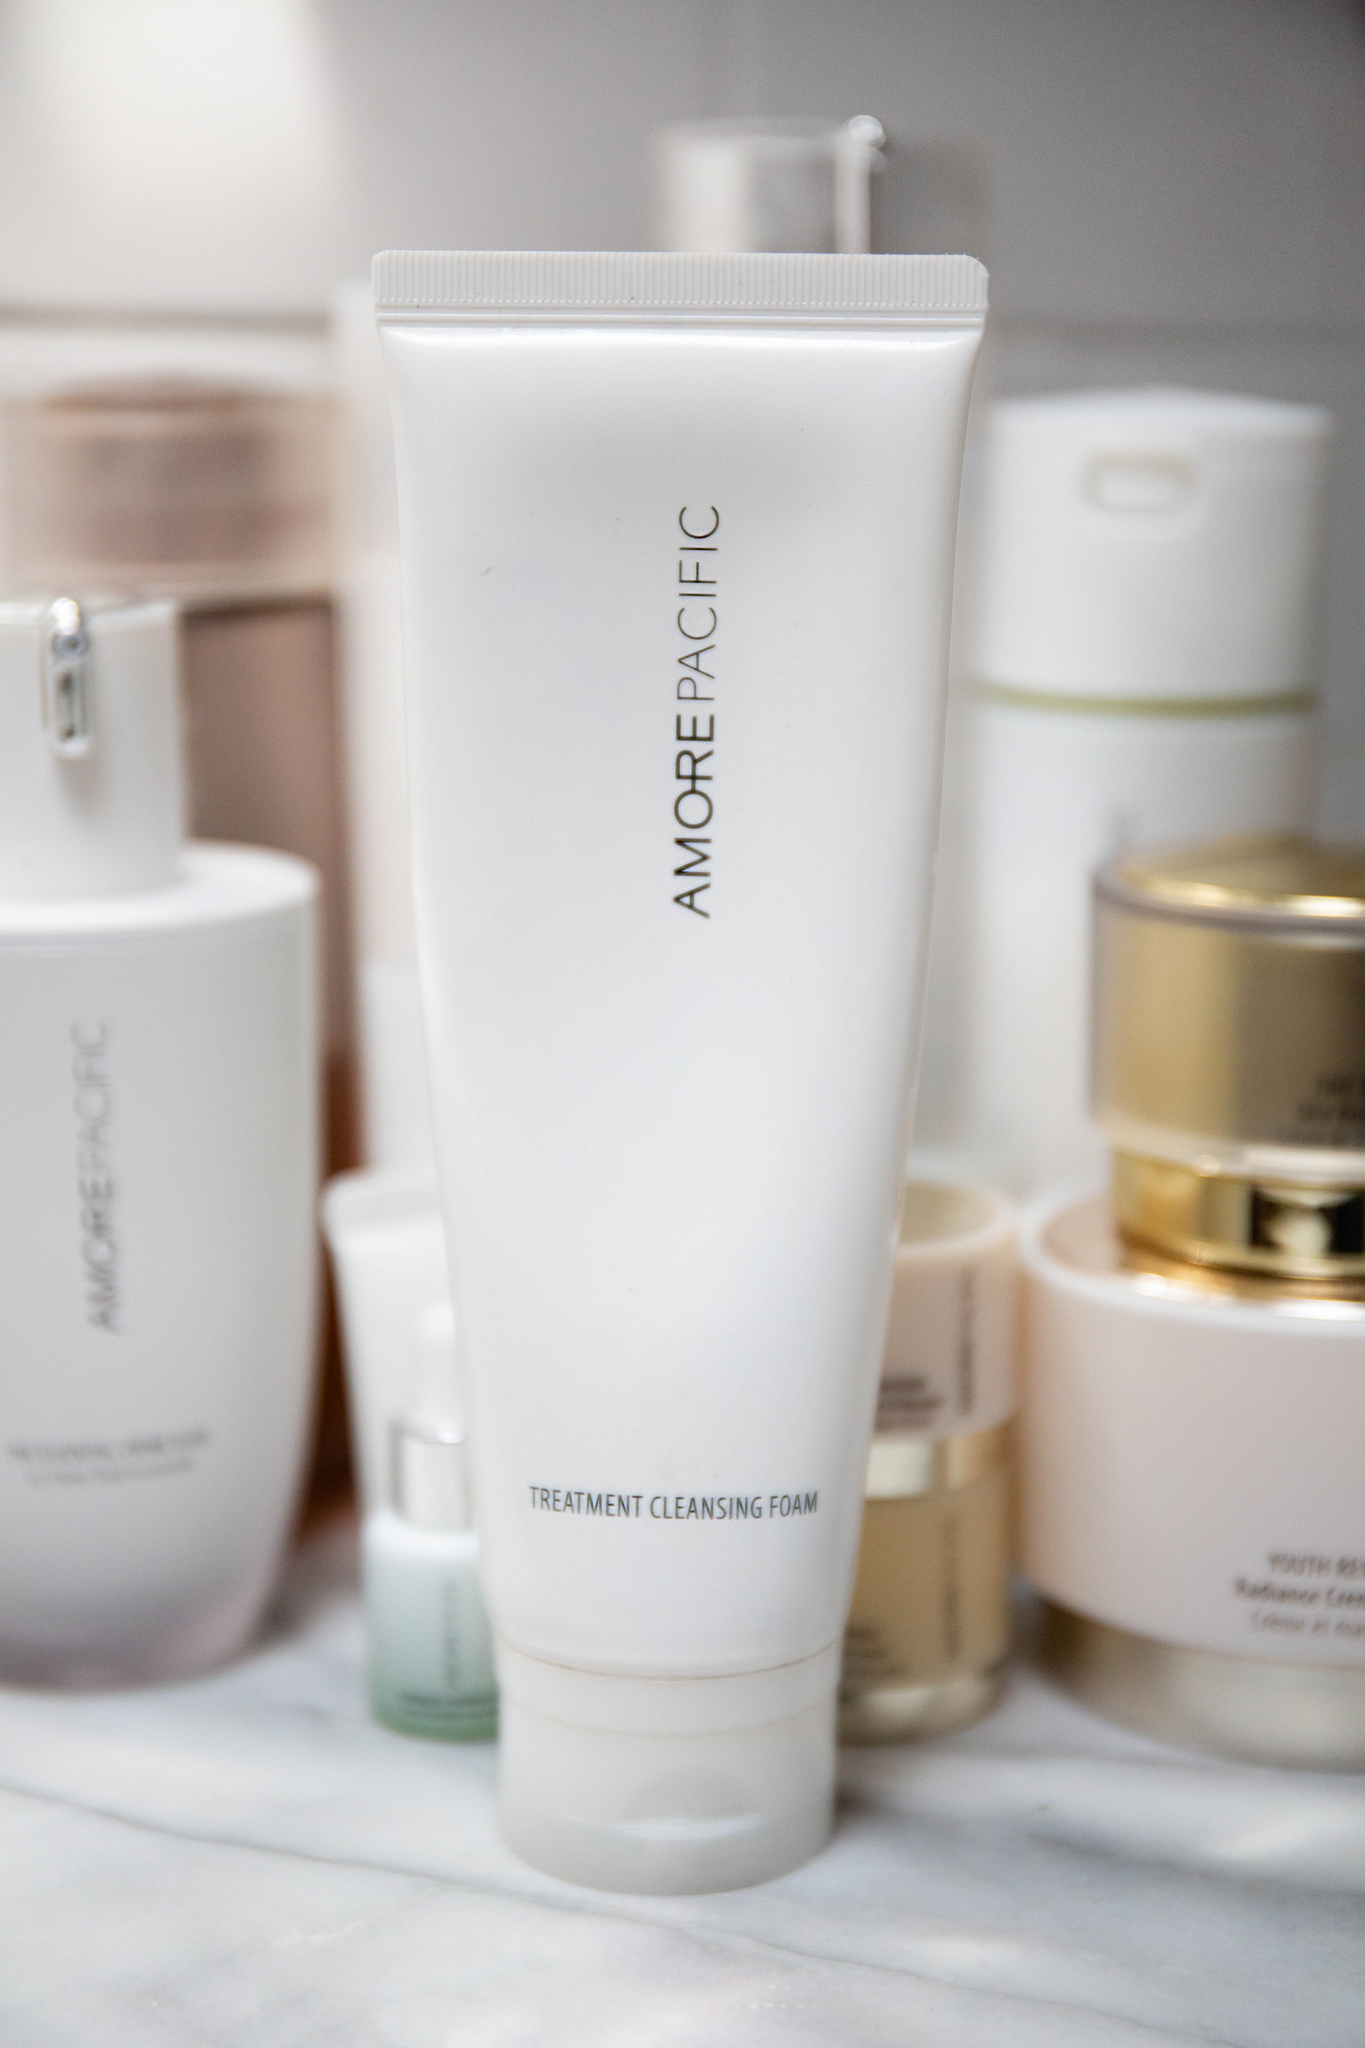 AmorePacific Cleansing Foam